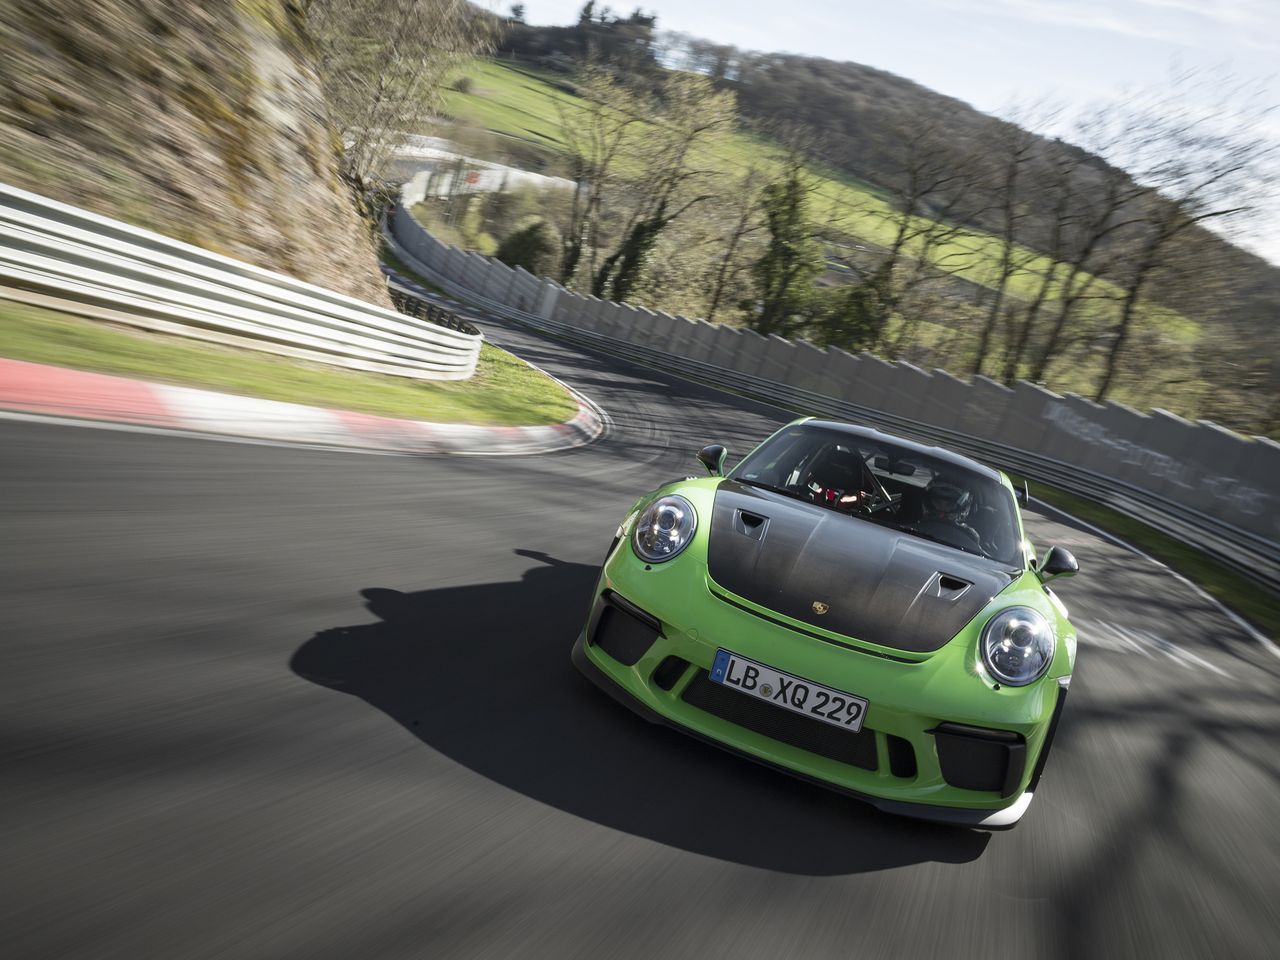 ... He especially likes the agility of the 911 GT3 RS and its ability to take curves at high speeds. Those features gain valuable seconds that make the difference in final racetrack times.